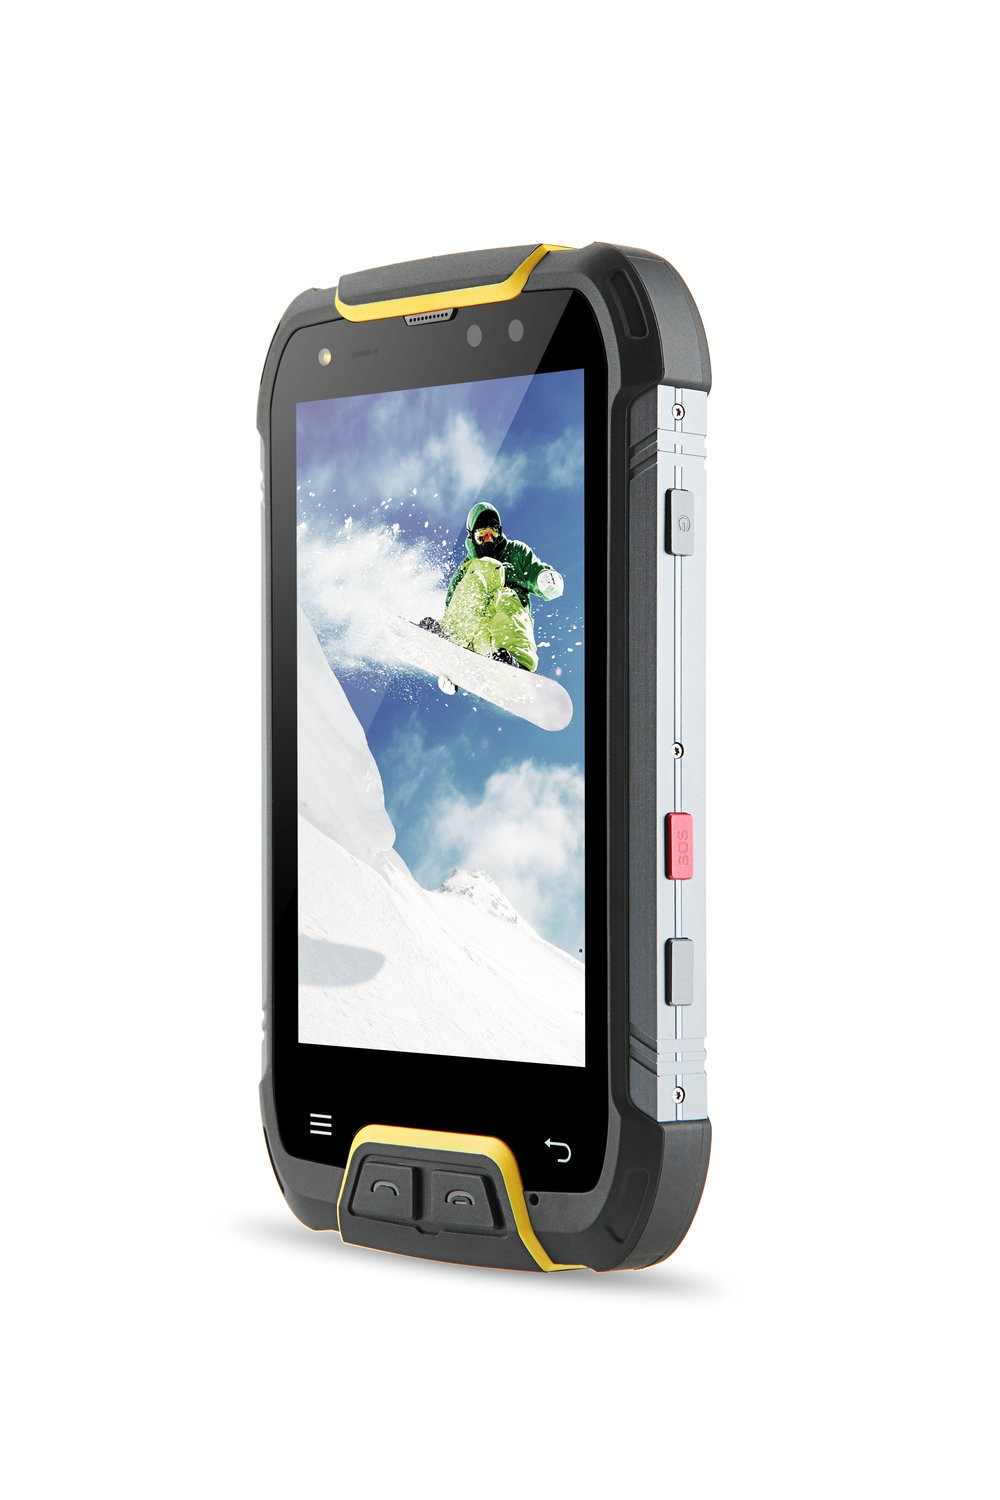 have like sharp sure this rugged tough comes to devices for razor always soft phone a i ultra phones smartphone cameras or be untitled out is best circuitbreaker spot meant not att they there android it may you first sonim when responders things but the rug can